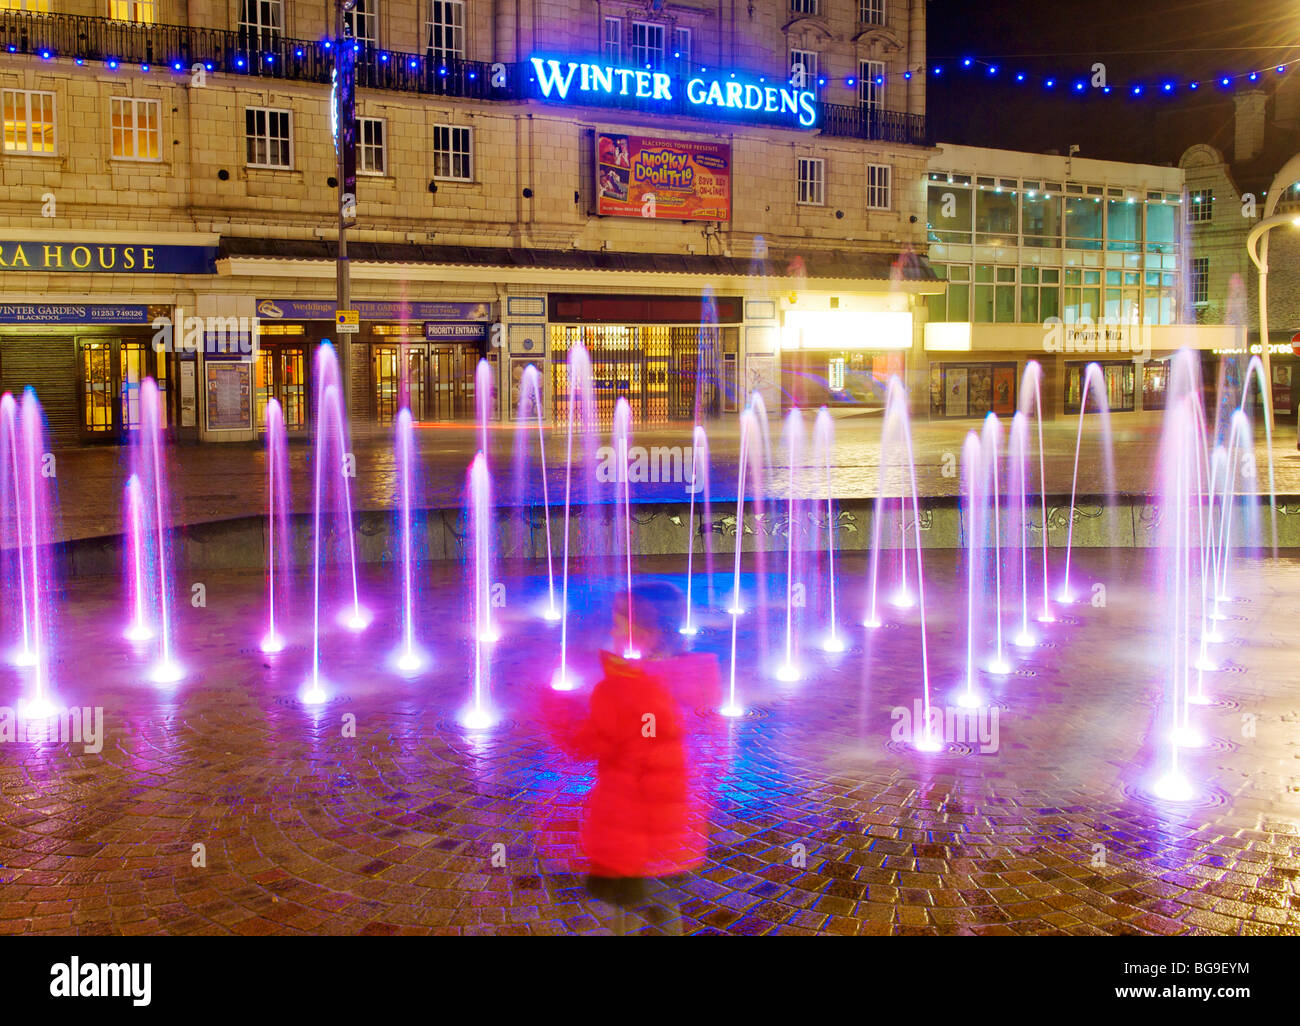 illuminated fountains and winter gardens at night blackpool stock